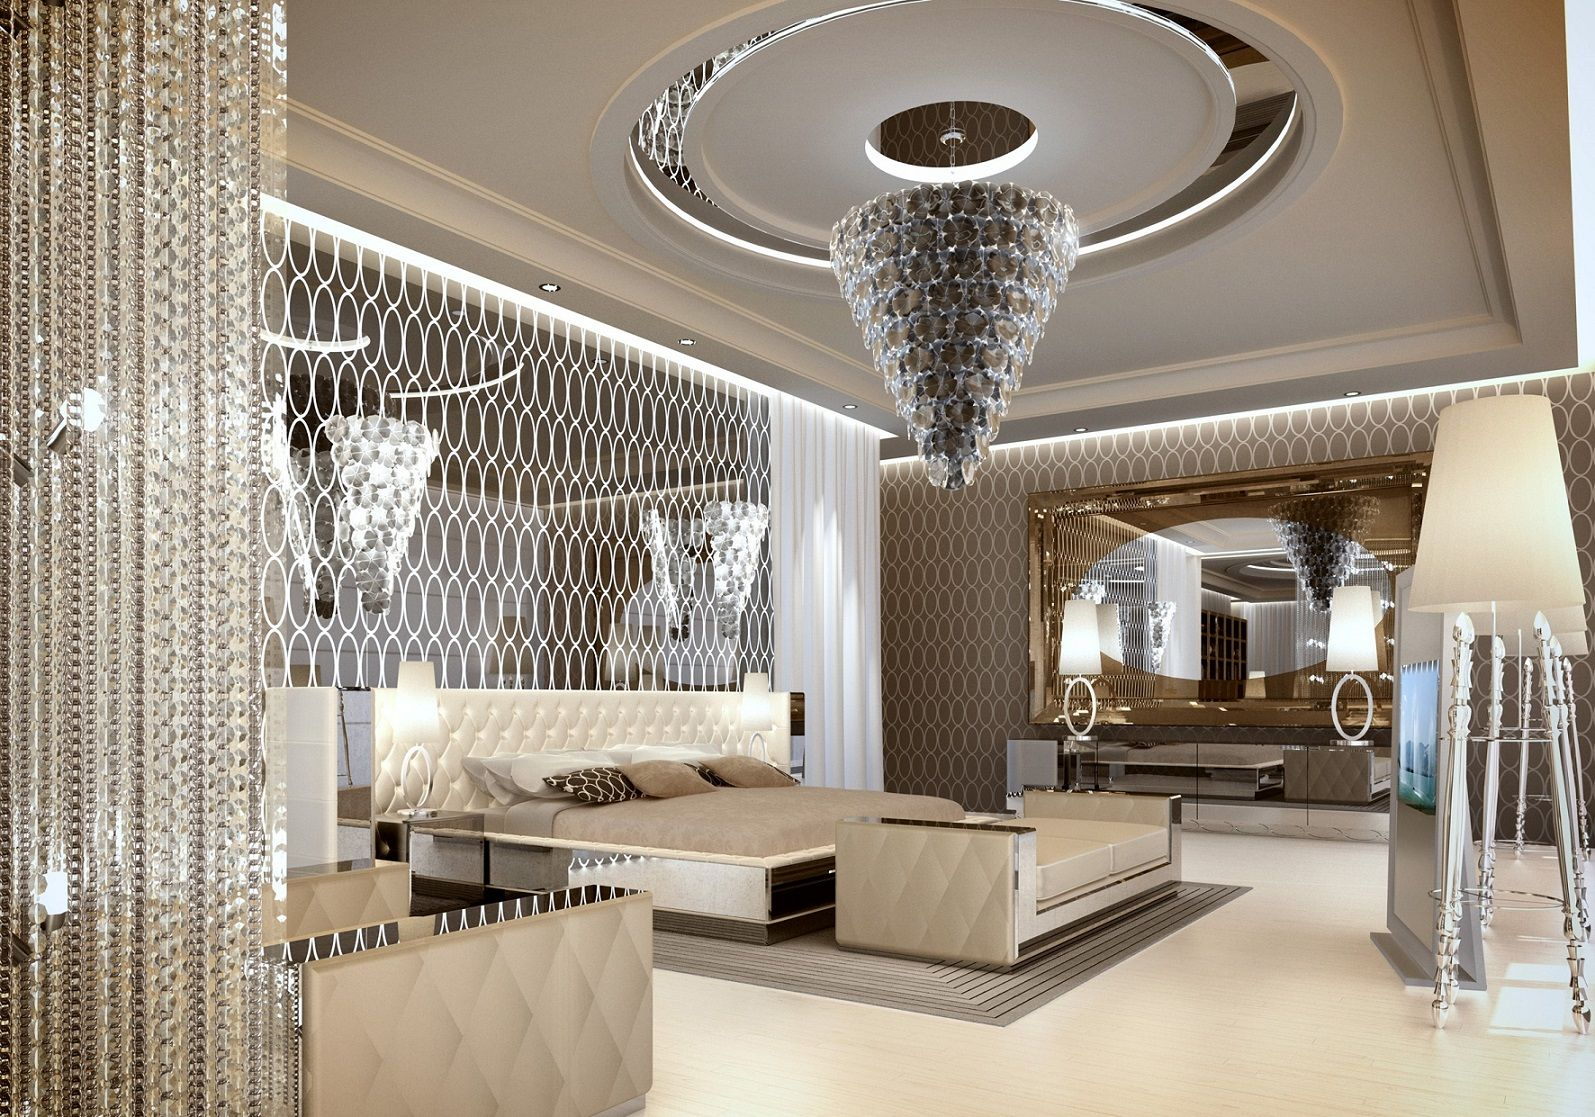 Ultra high end hotel signature collection designer for Bedroom accessory furniture